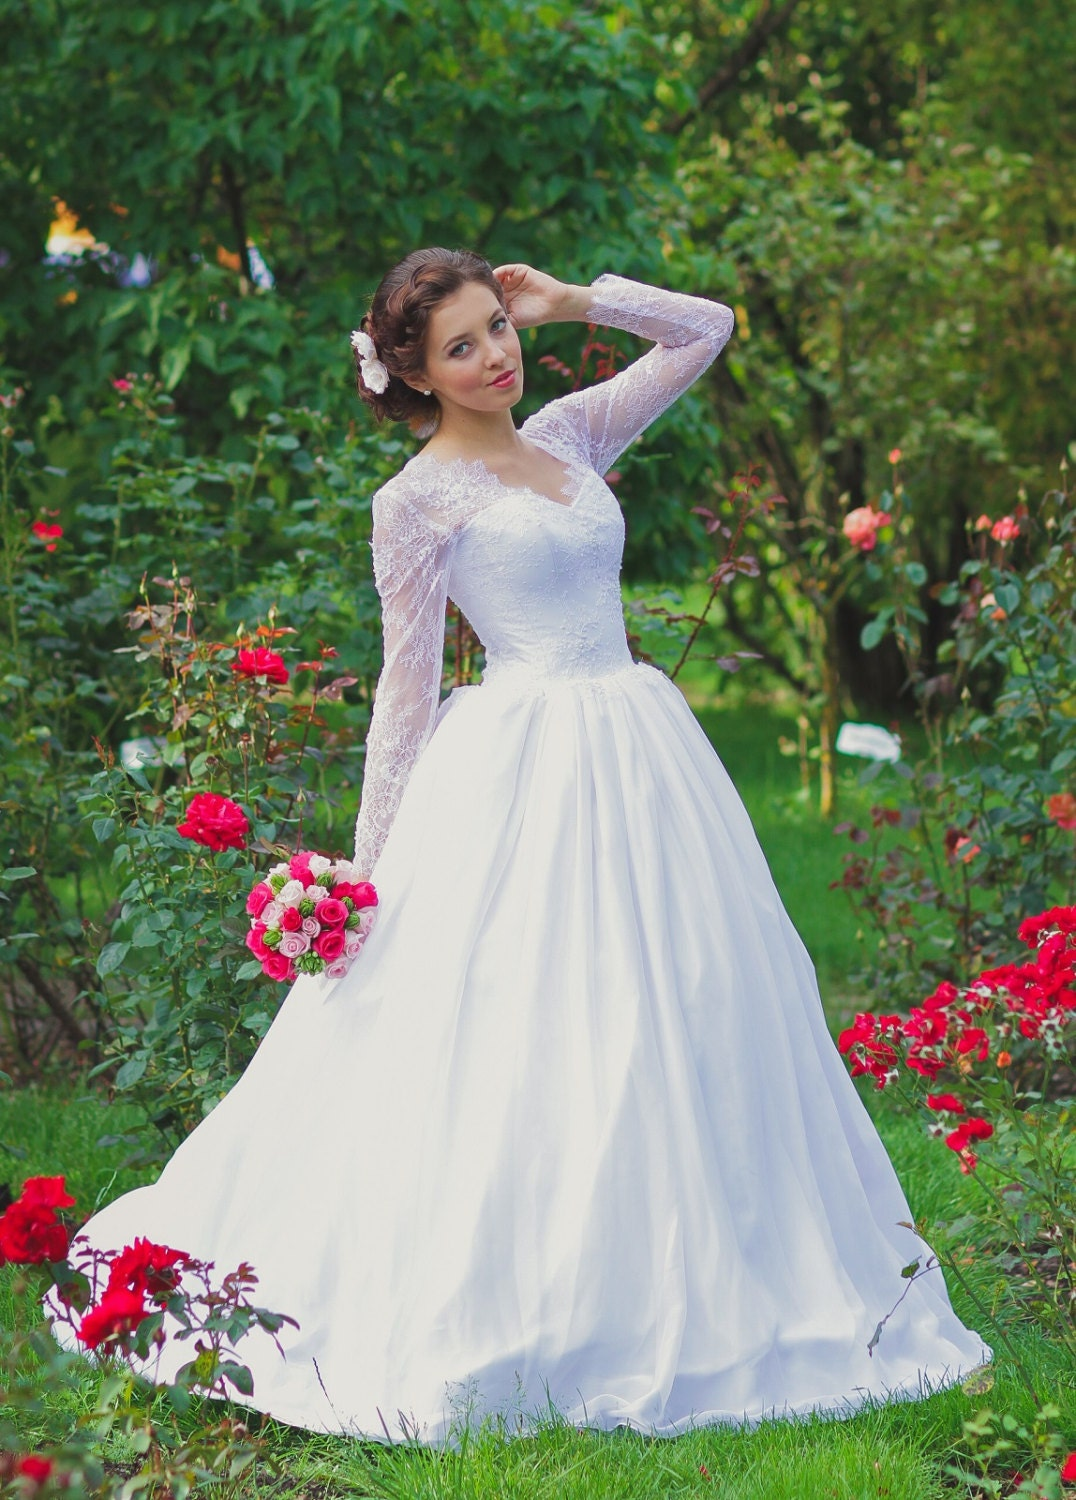 Vintage Inspired Chiffon White Wedding Dress with French Lace